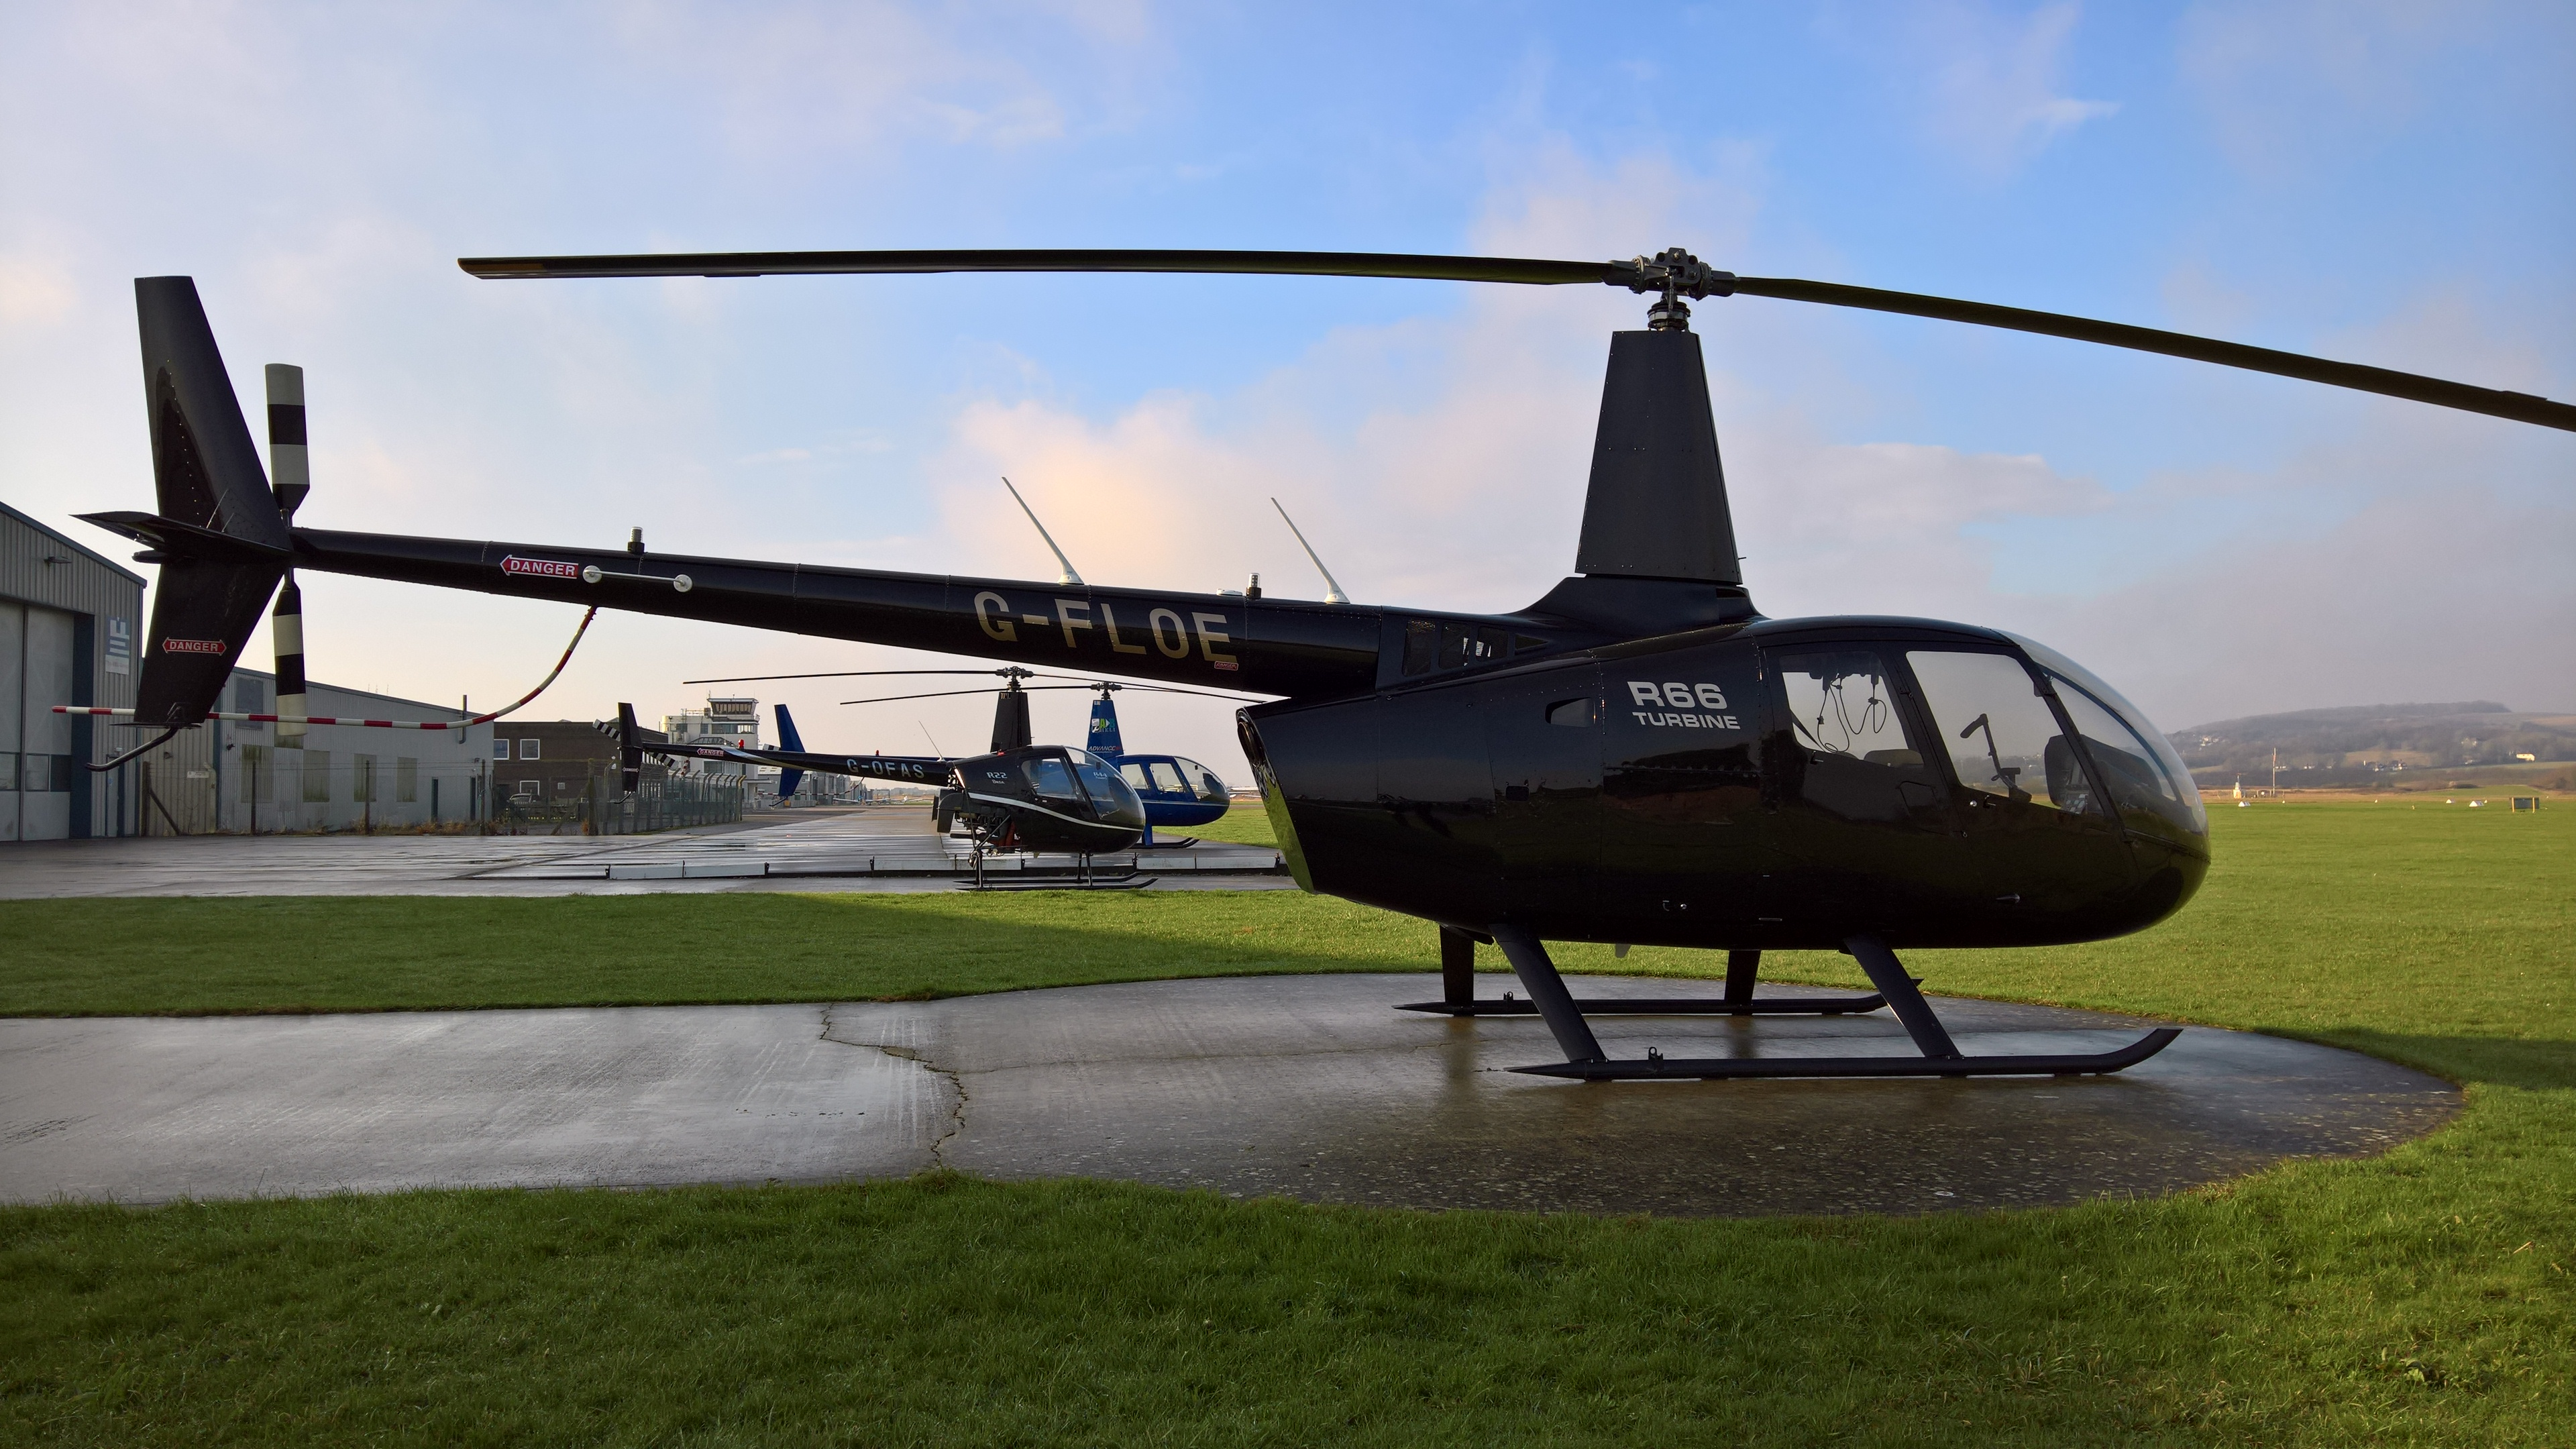 45 Minute Helicopter Experience - R66